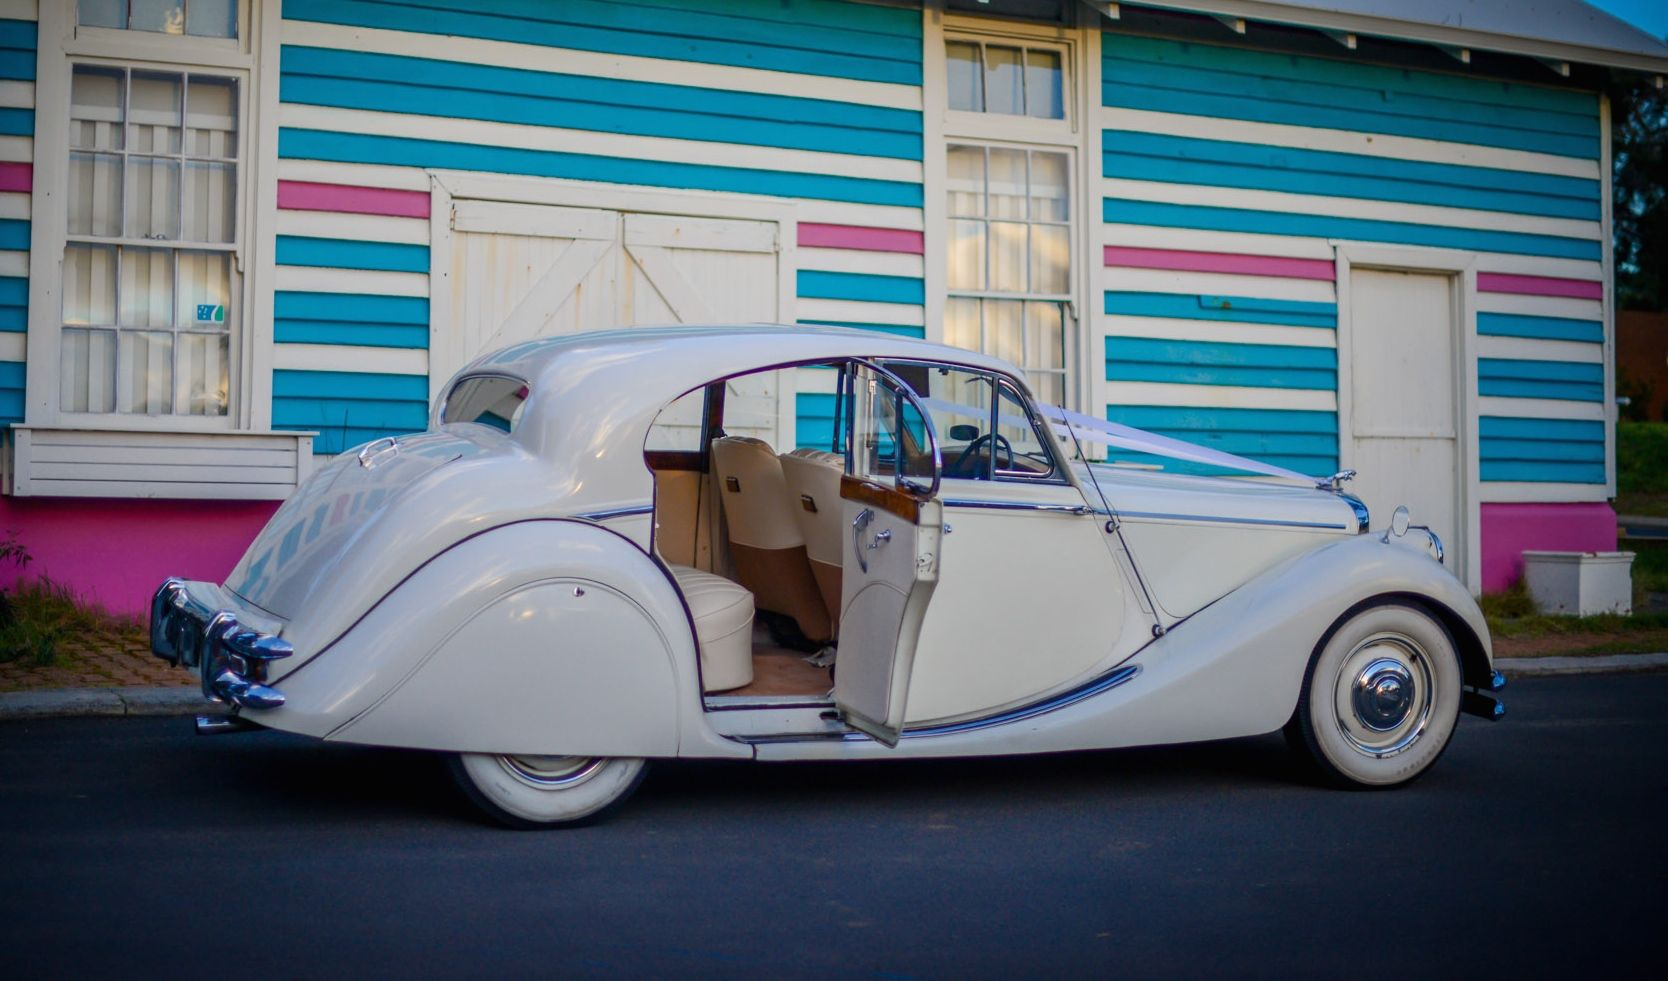 First Introduced At The London Motor Show In 1948 This Car Is The Latest To Our Fleet Of Classic Cars Available For Hire From Feb Classic Cars Sedan Car Hire